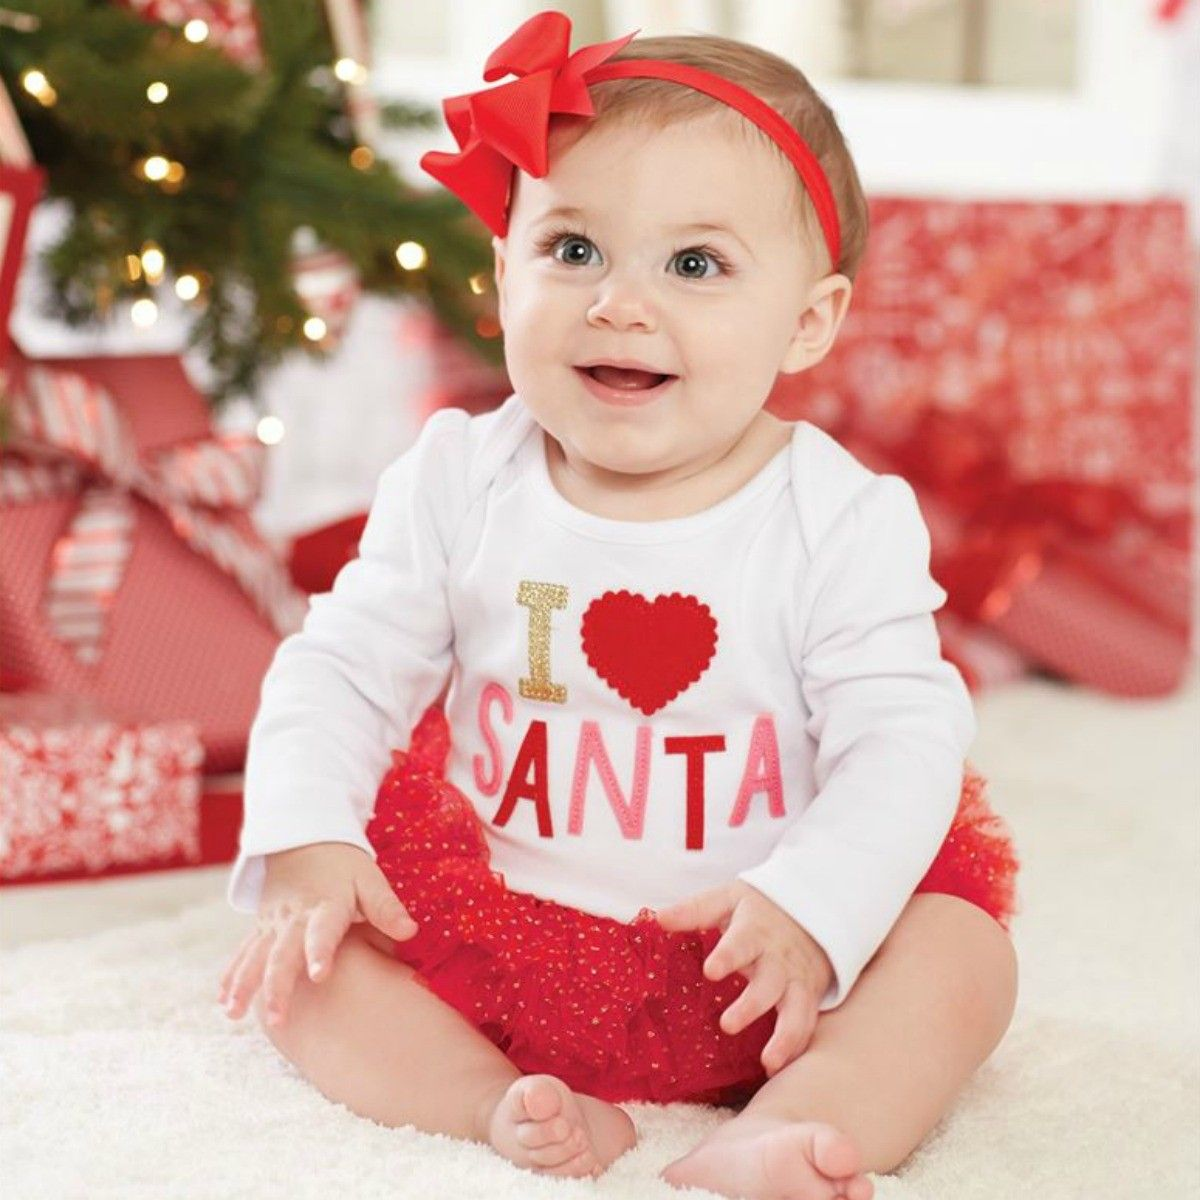 """This """"I Love Santa"""" tutu crawler will have everyone's Christmas spirits high. Your little one will look adorable crawling around in this piece. #tutu #santa #christmas #winter #smile #sakids #smockedauctions"""